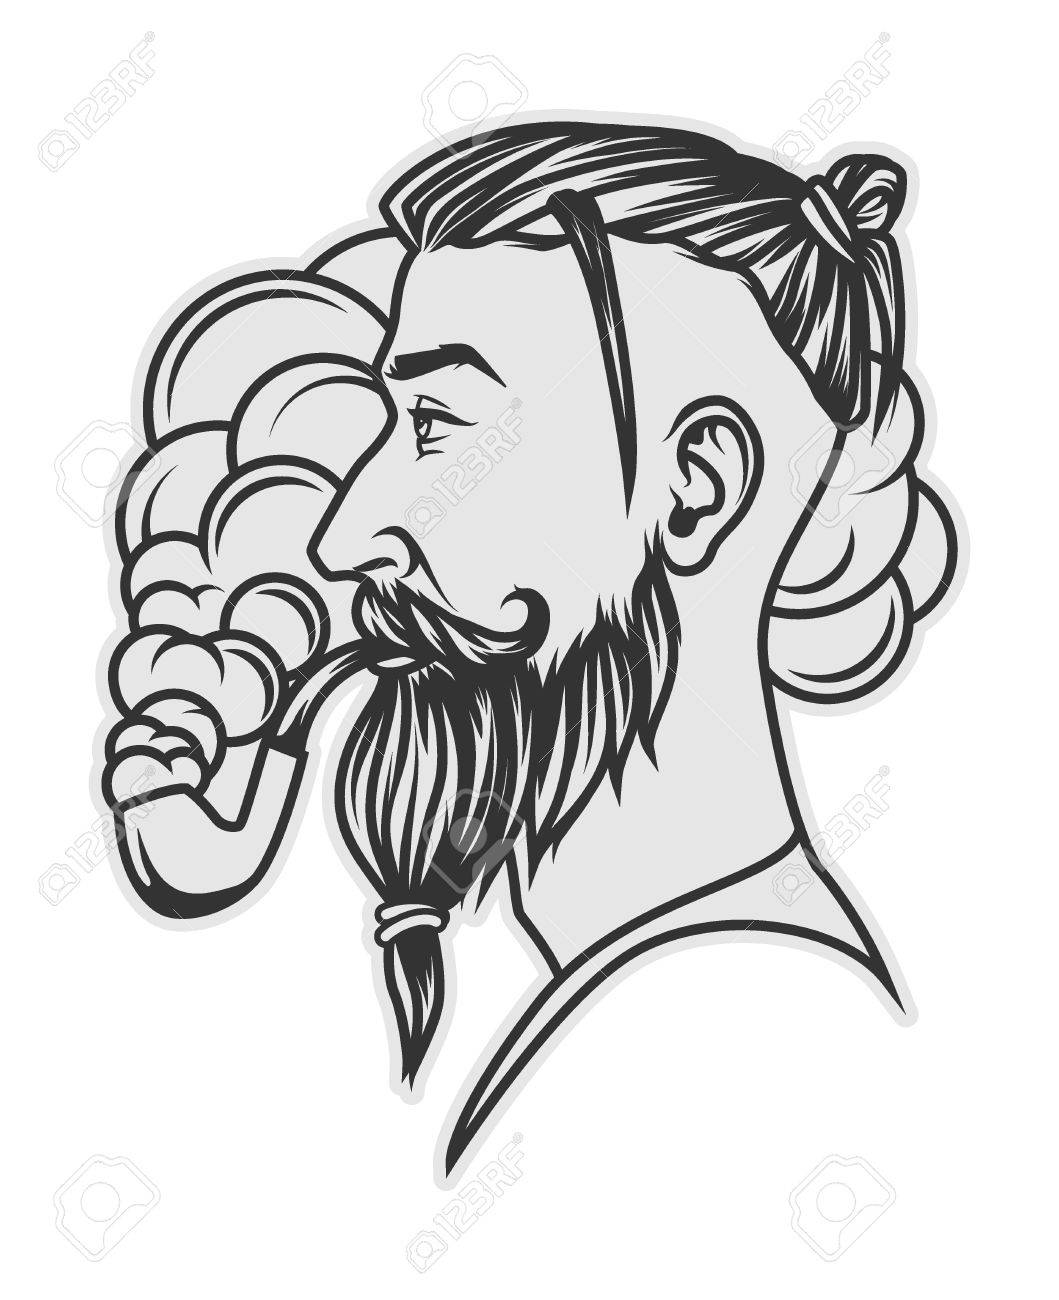 Hipster with beard and undercut hairstyle smoking tube portrait Stock  Vector , 79737302